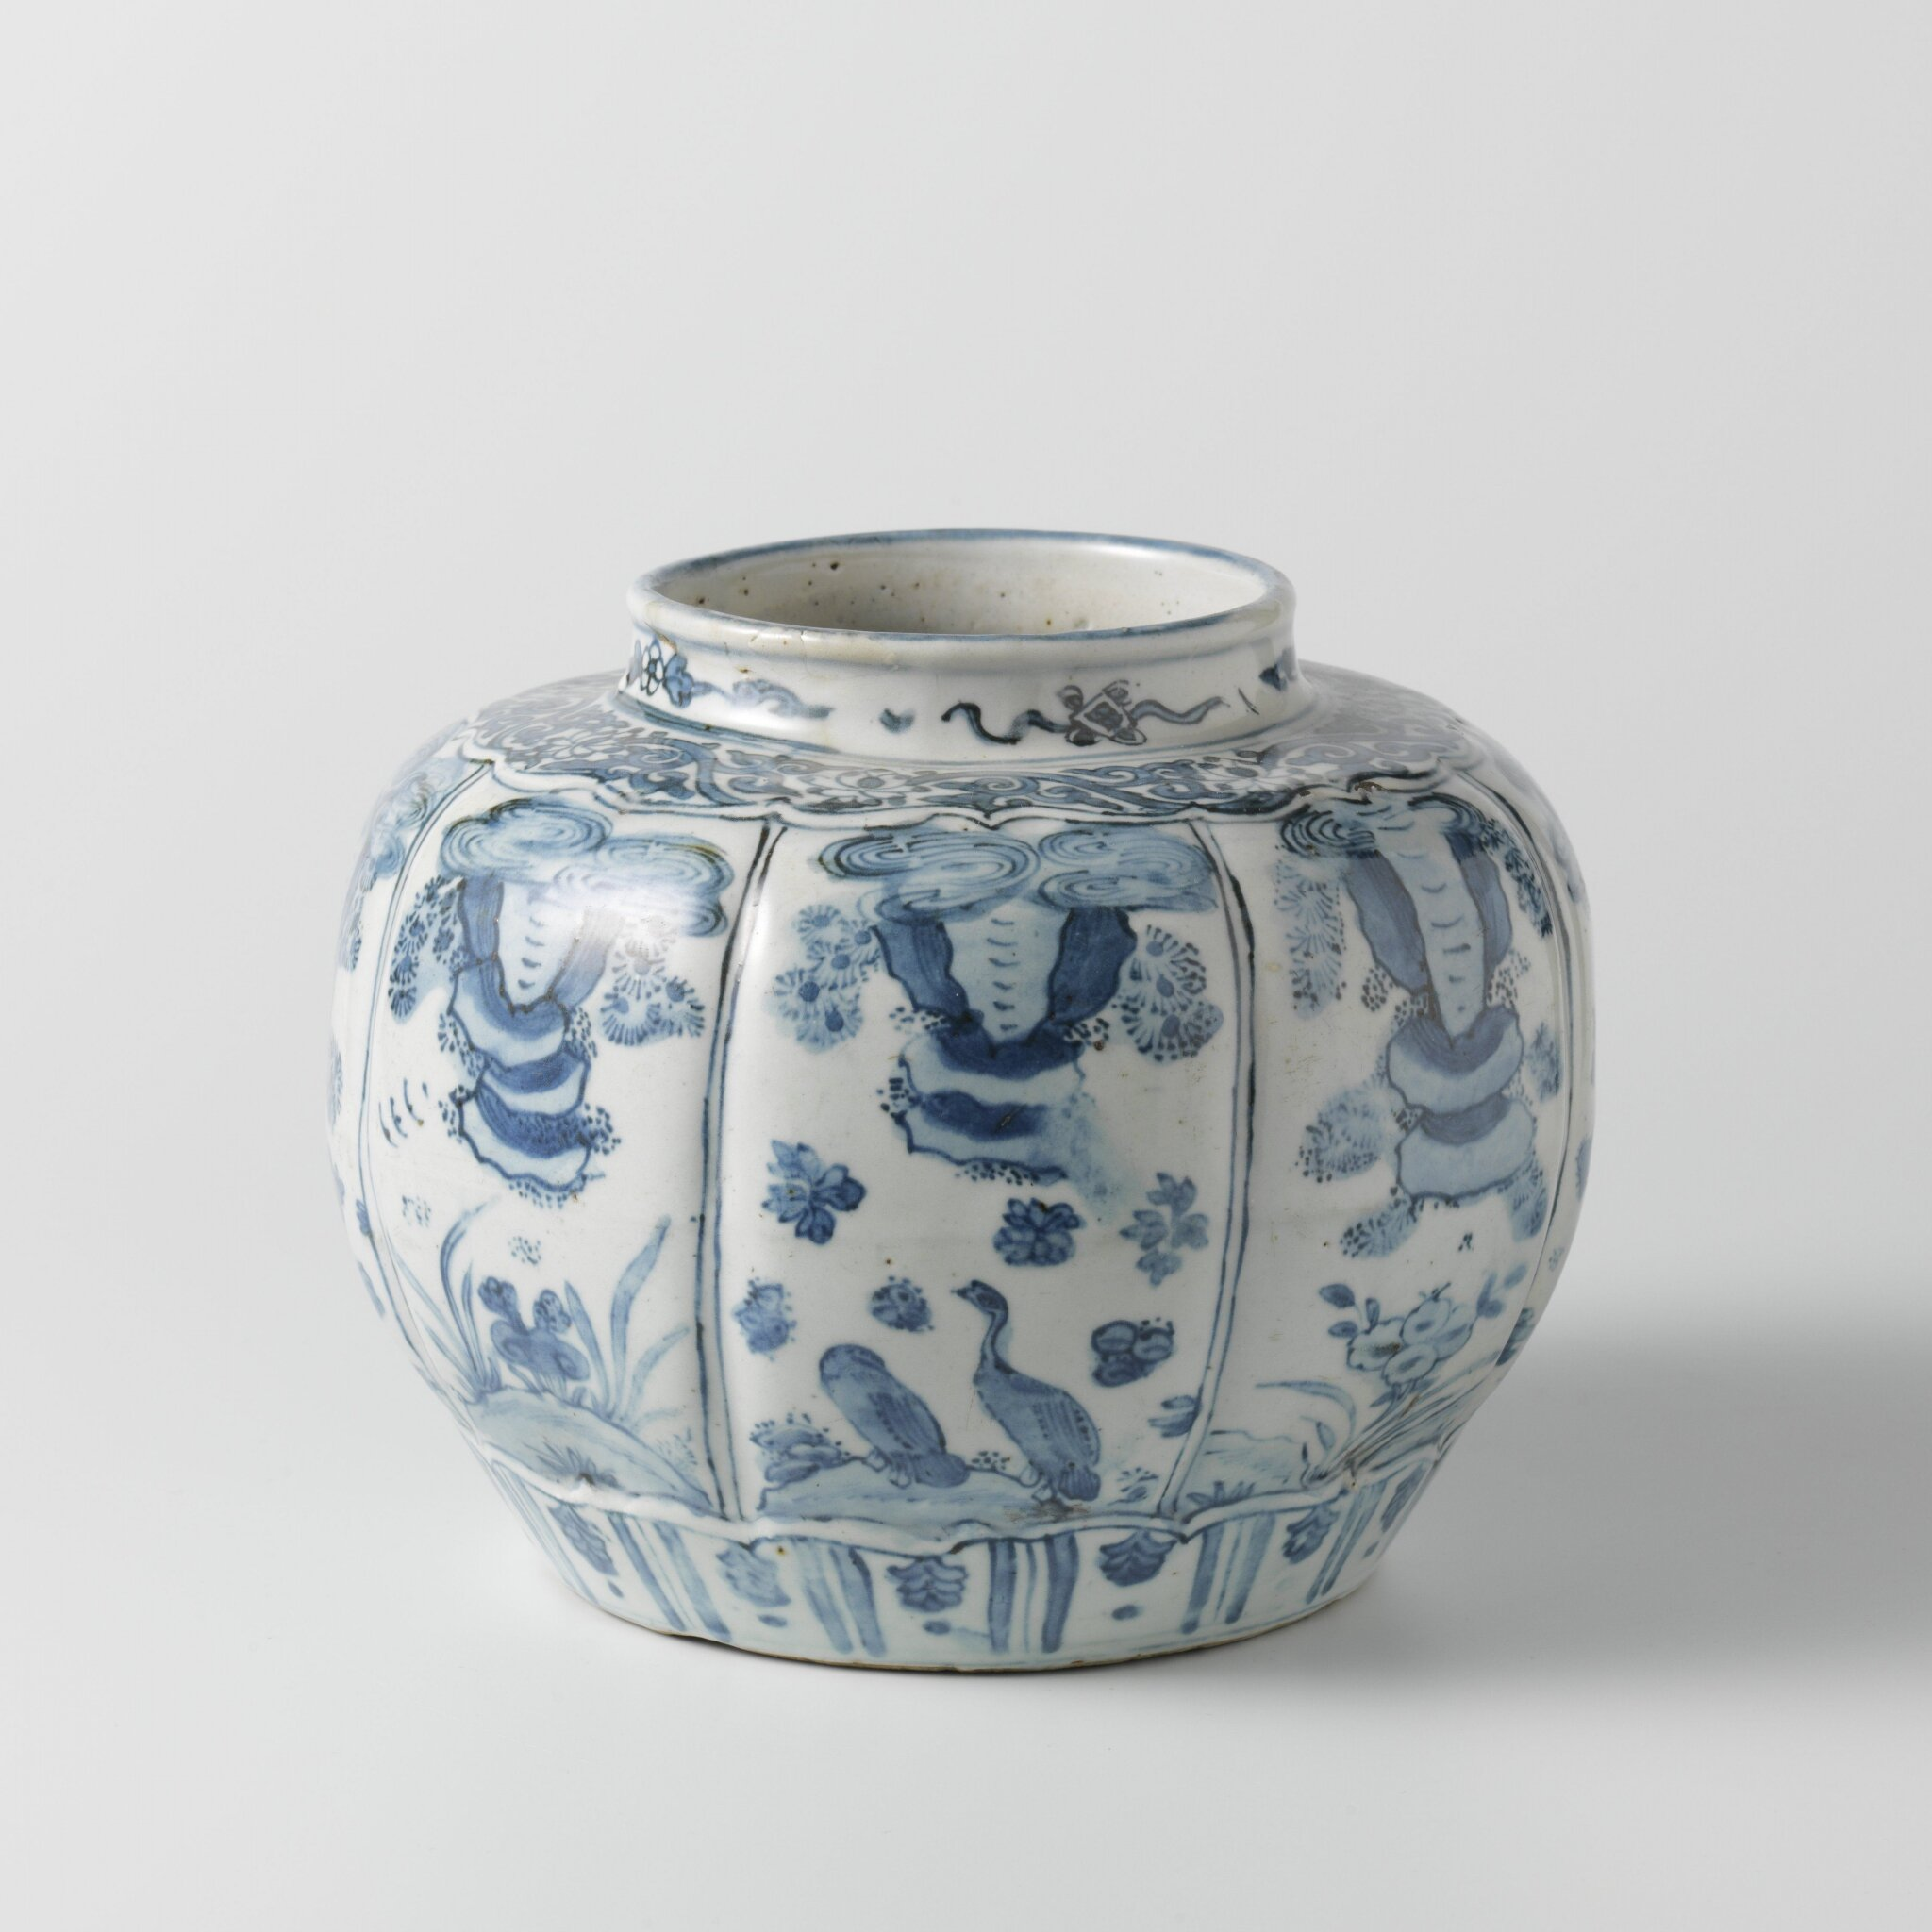 Melon-shaped jar, Wanli period, 1575 - 1600